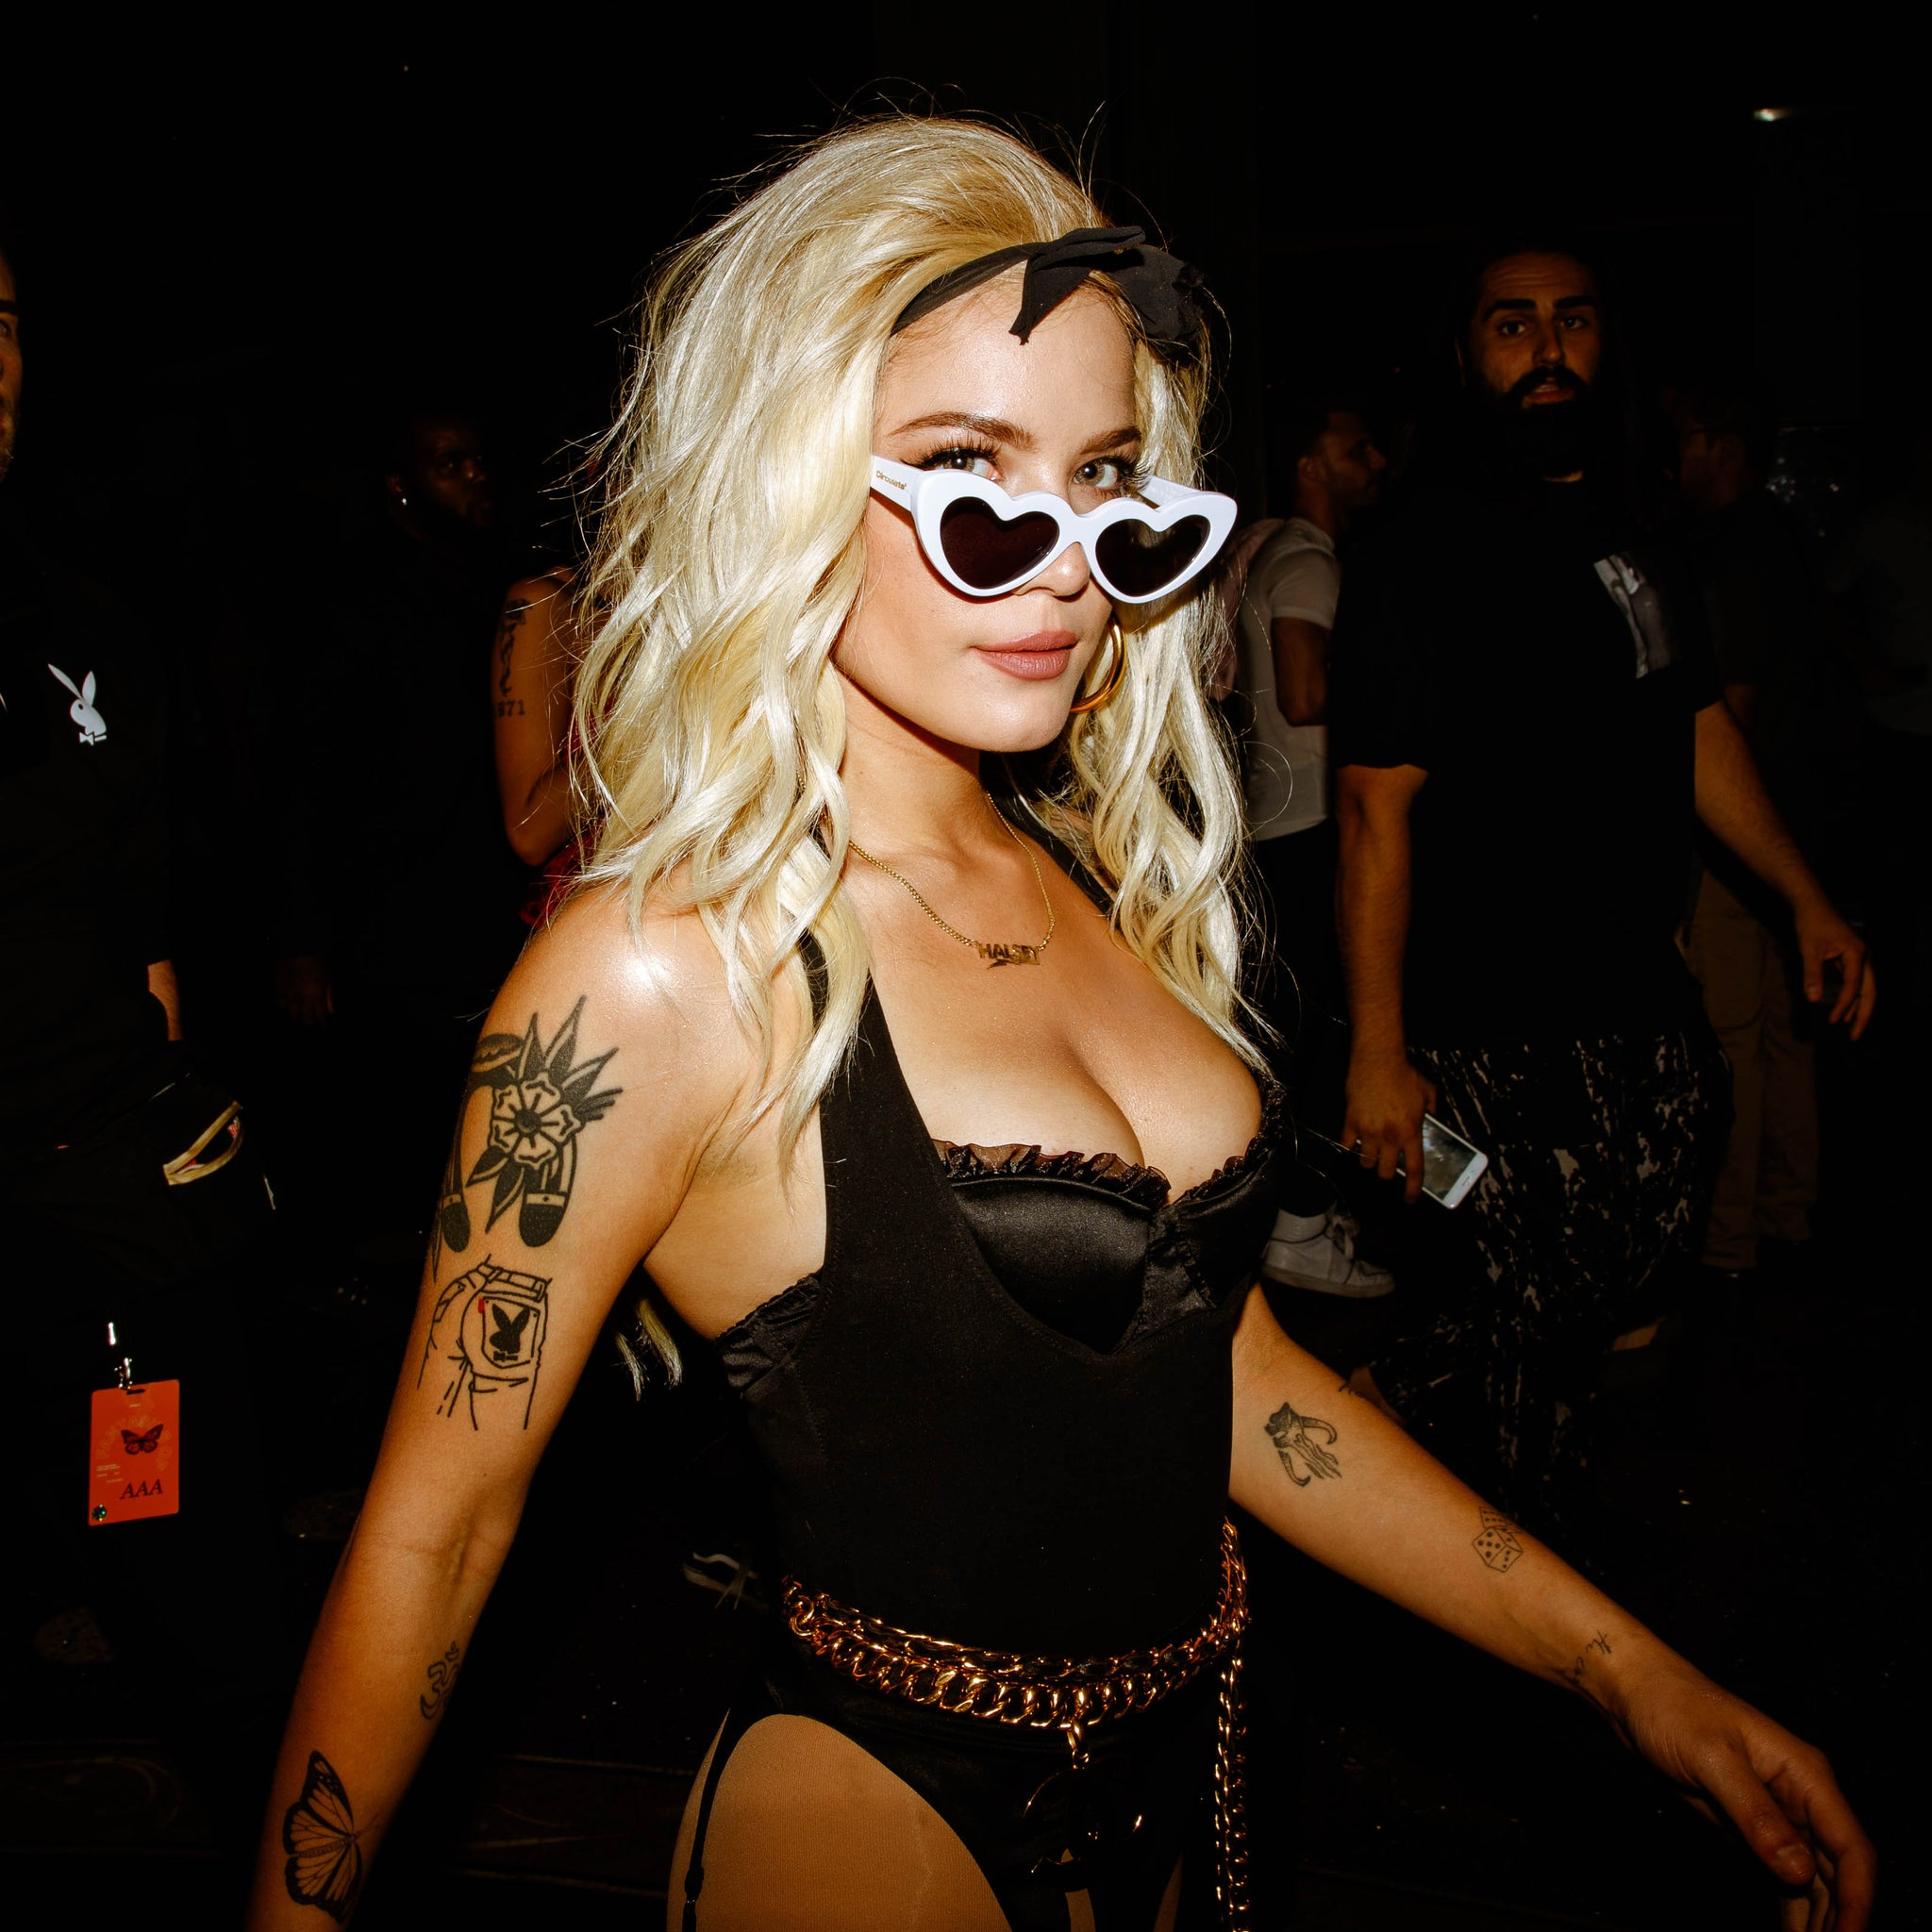 Halsey wearing AKILA GOSSIP heart-shaped sunglasses